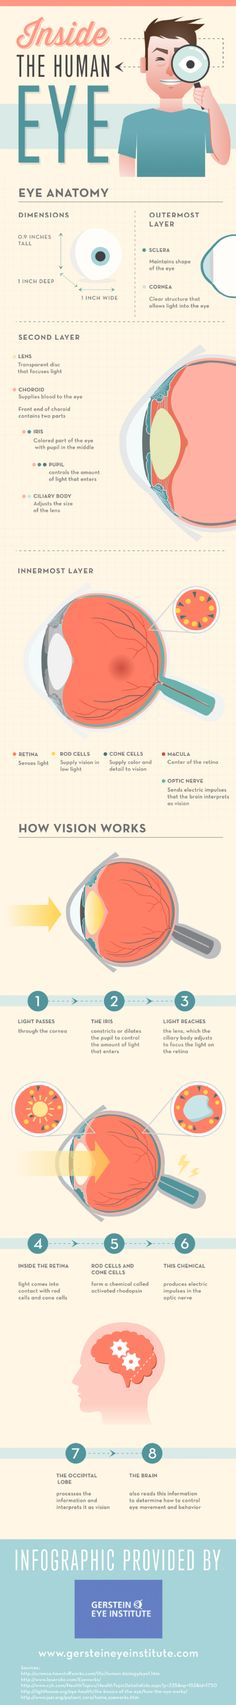 The retina is located in the innermost layer of the eye and senses light. Rod cells in the retina supply vision in low light, while cone cells in the retina supply color and detail to vision. Find more eye anatomy facts on this Chicago eye surgeon infographic.